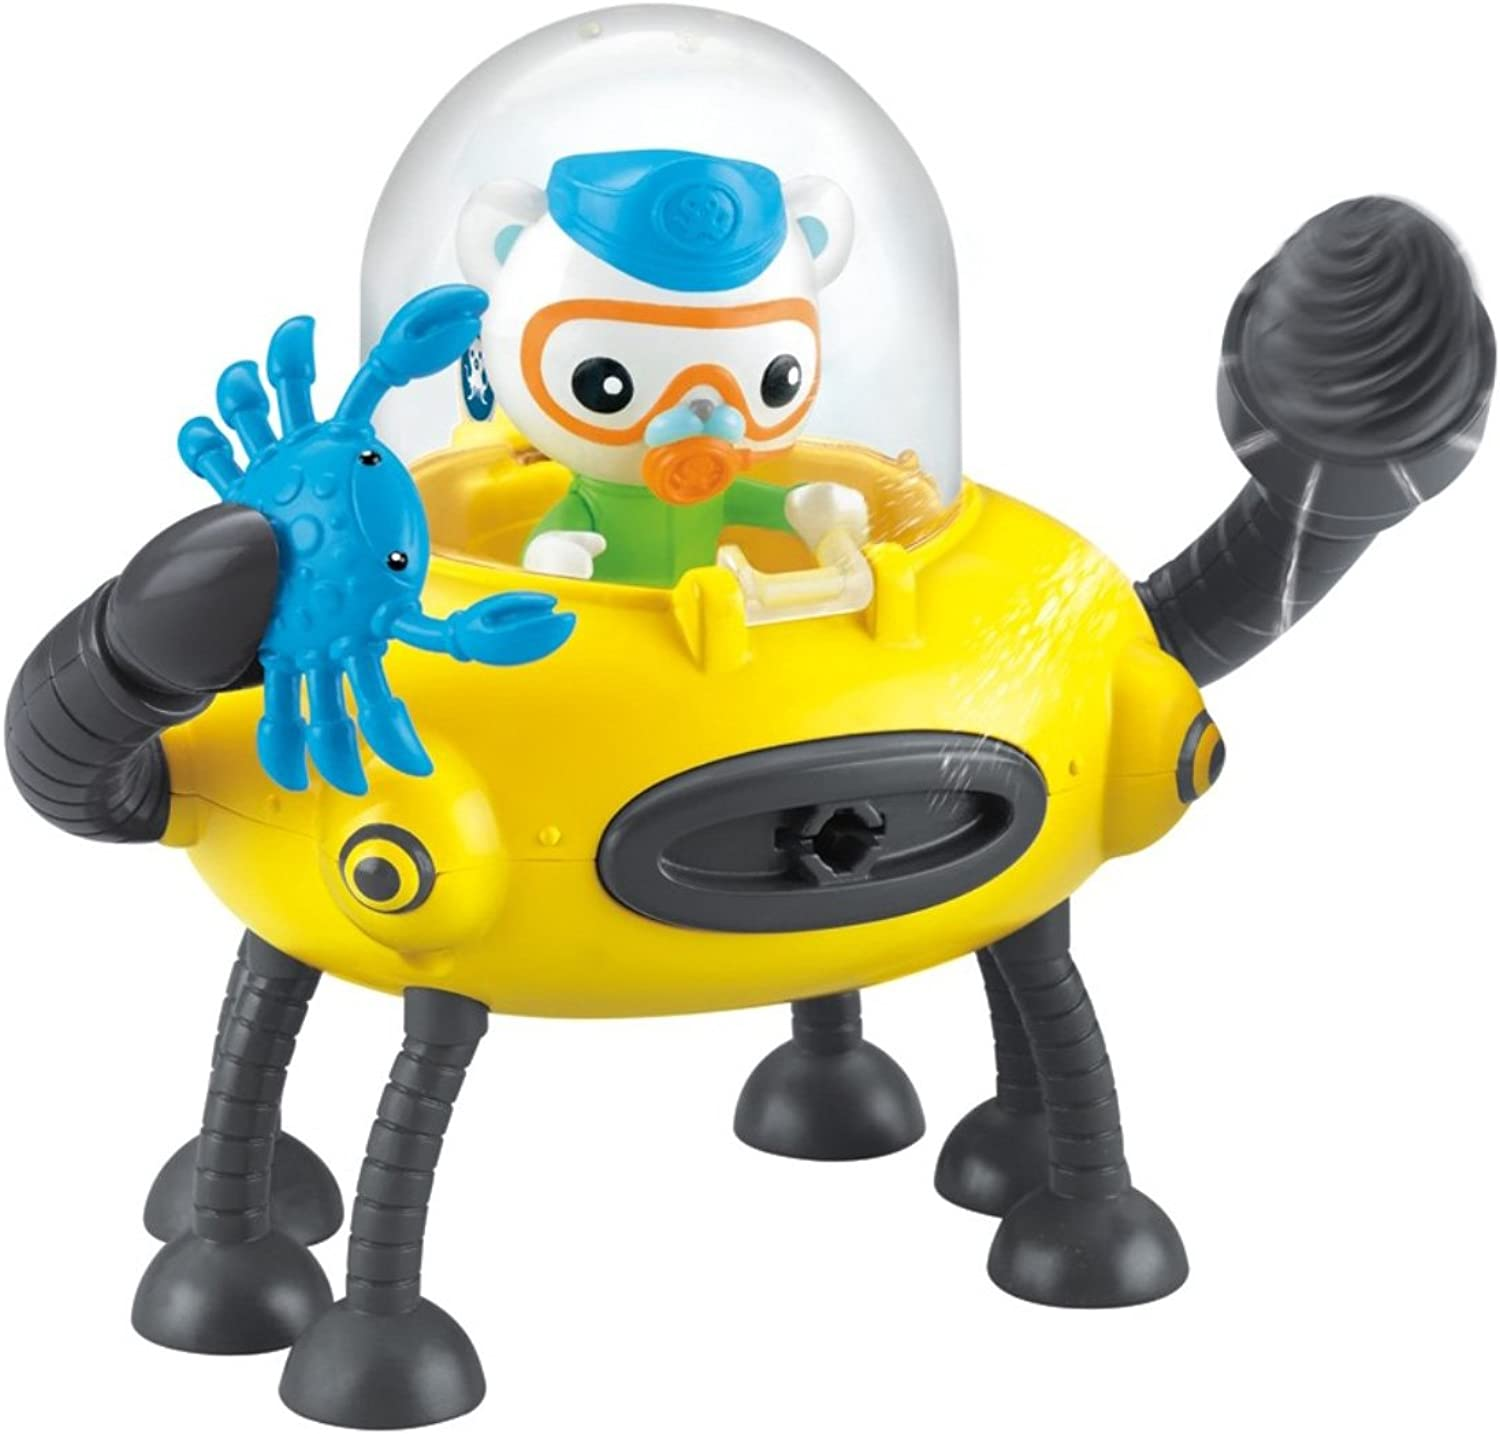 Mattel Octonauts Claw and Drill GUP-D (New for 2013)